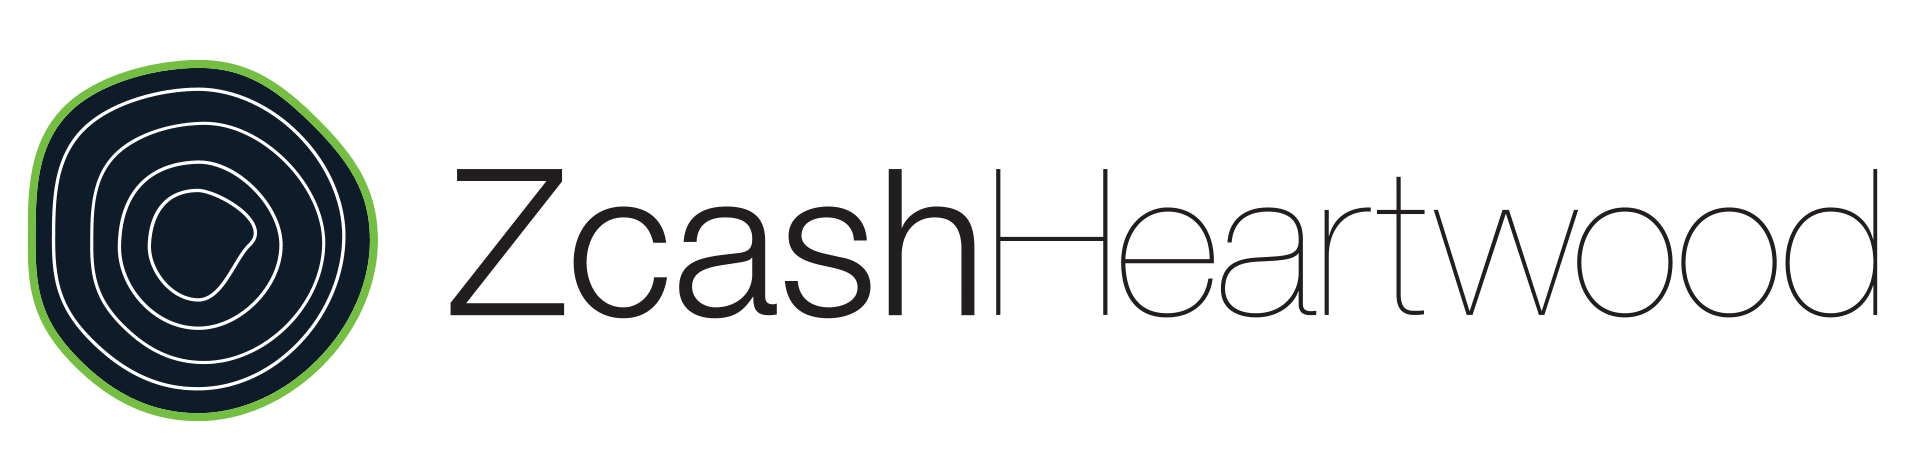 Full color Zcash Heartwood horizontal logo